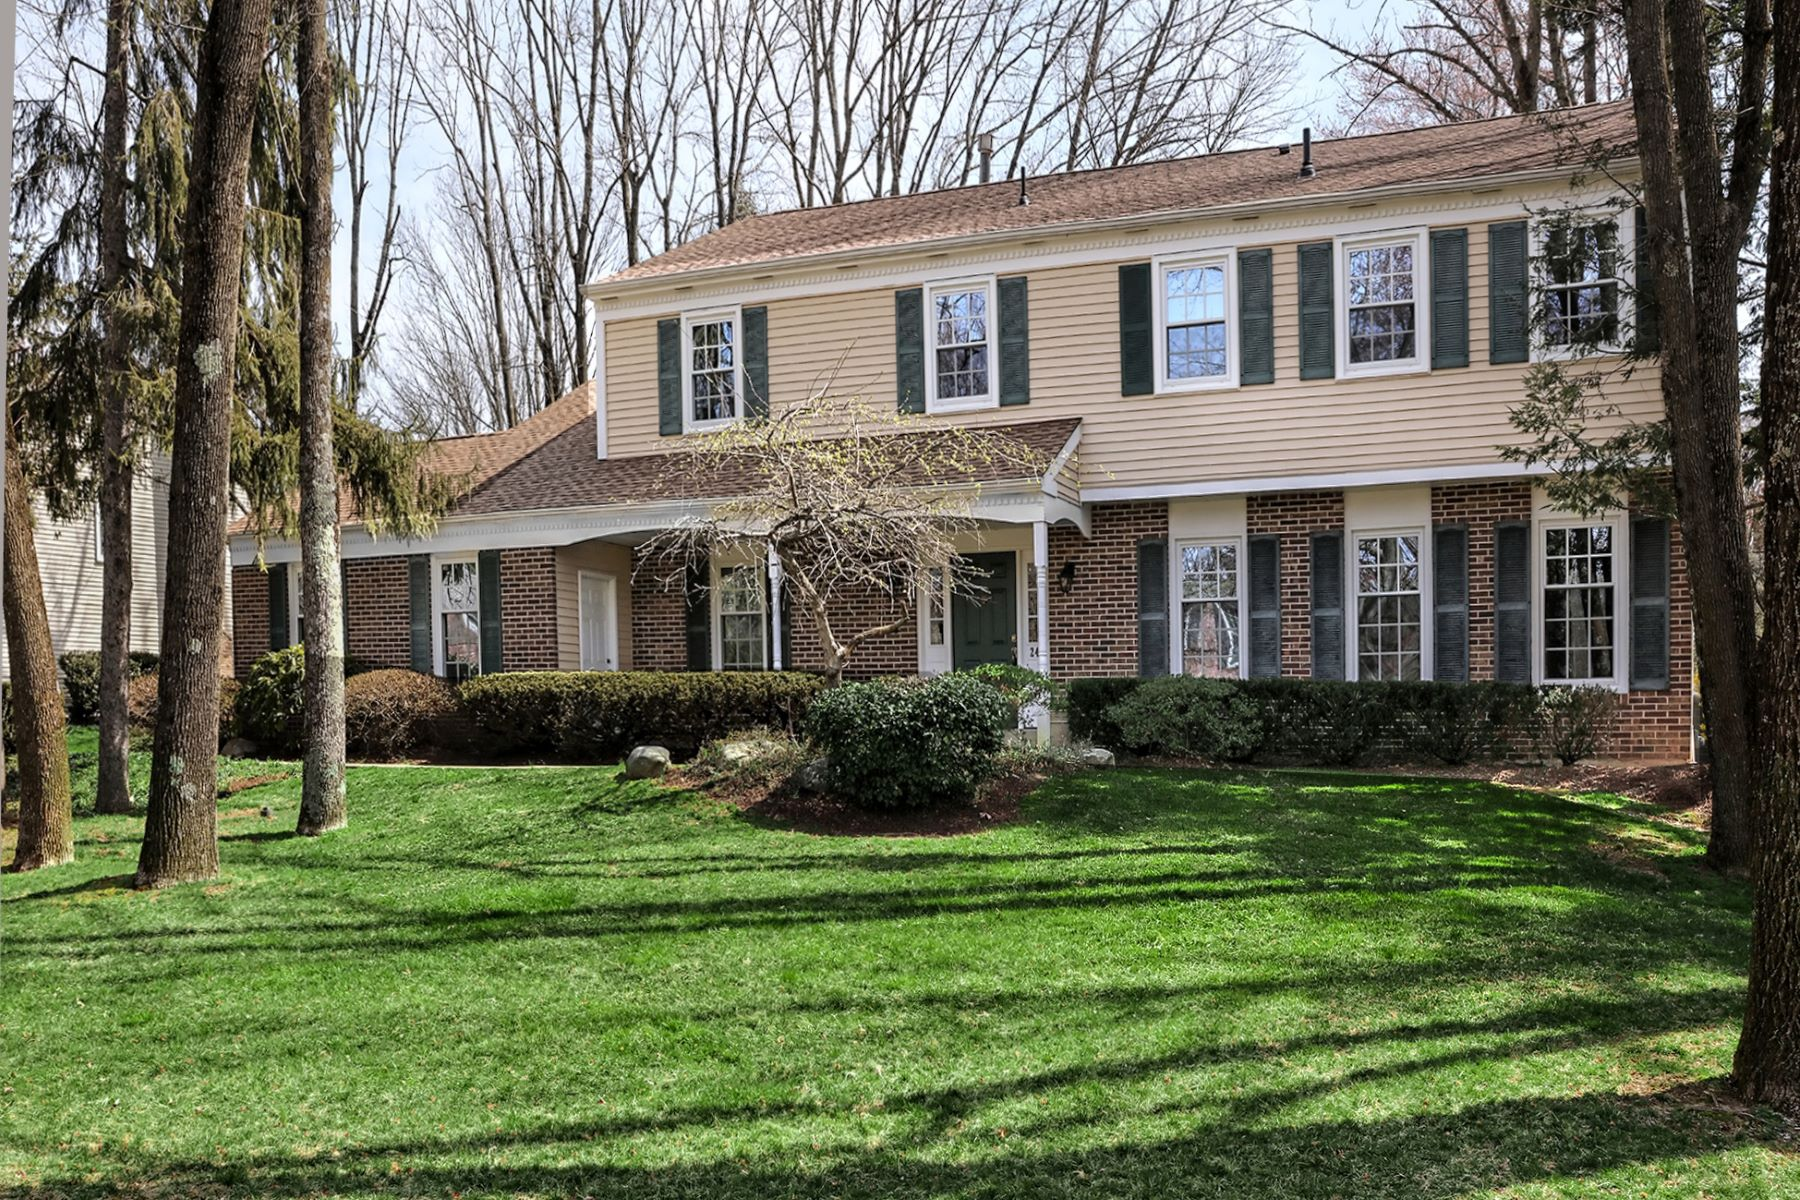 Property for Sale at Lawrence Colonial Is the Perfect Place to Unwind 24 Tracey Drive, Lawrenceville, New Jersey 08648 United States